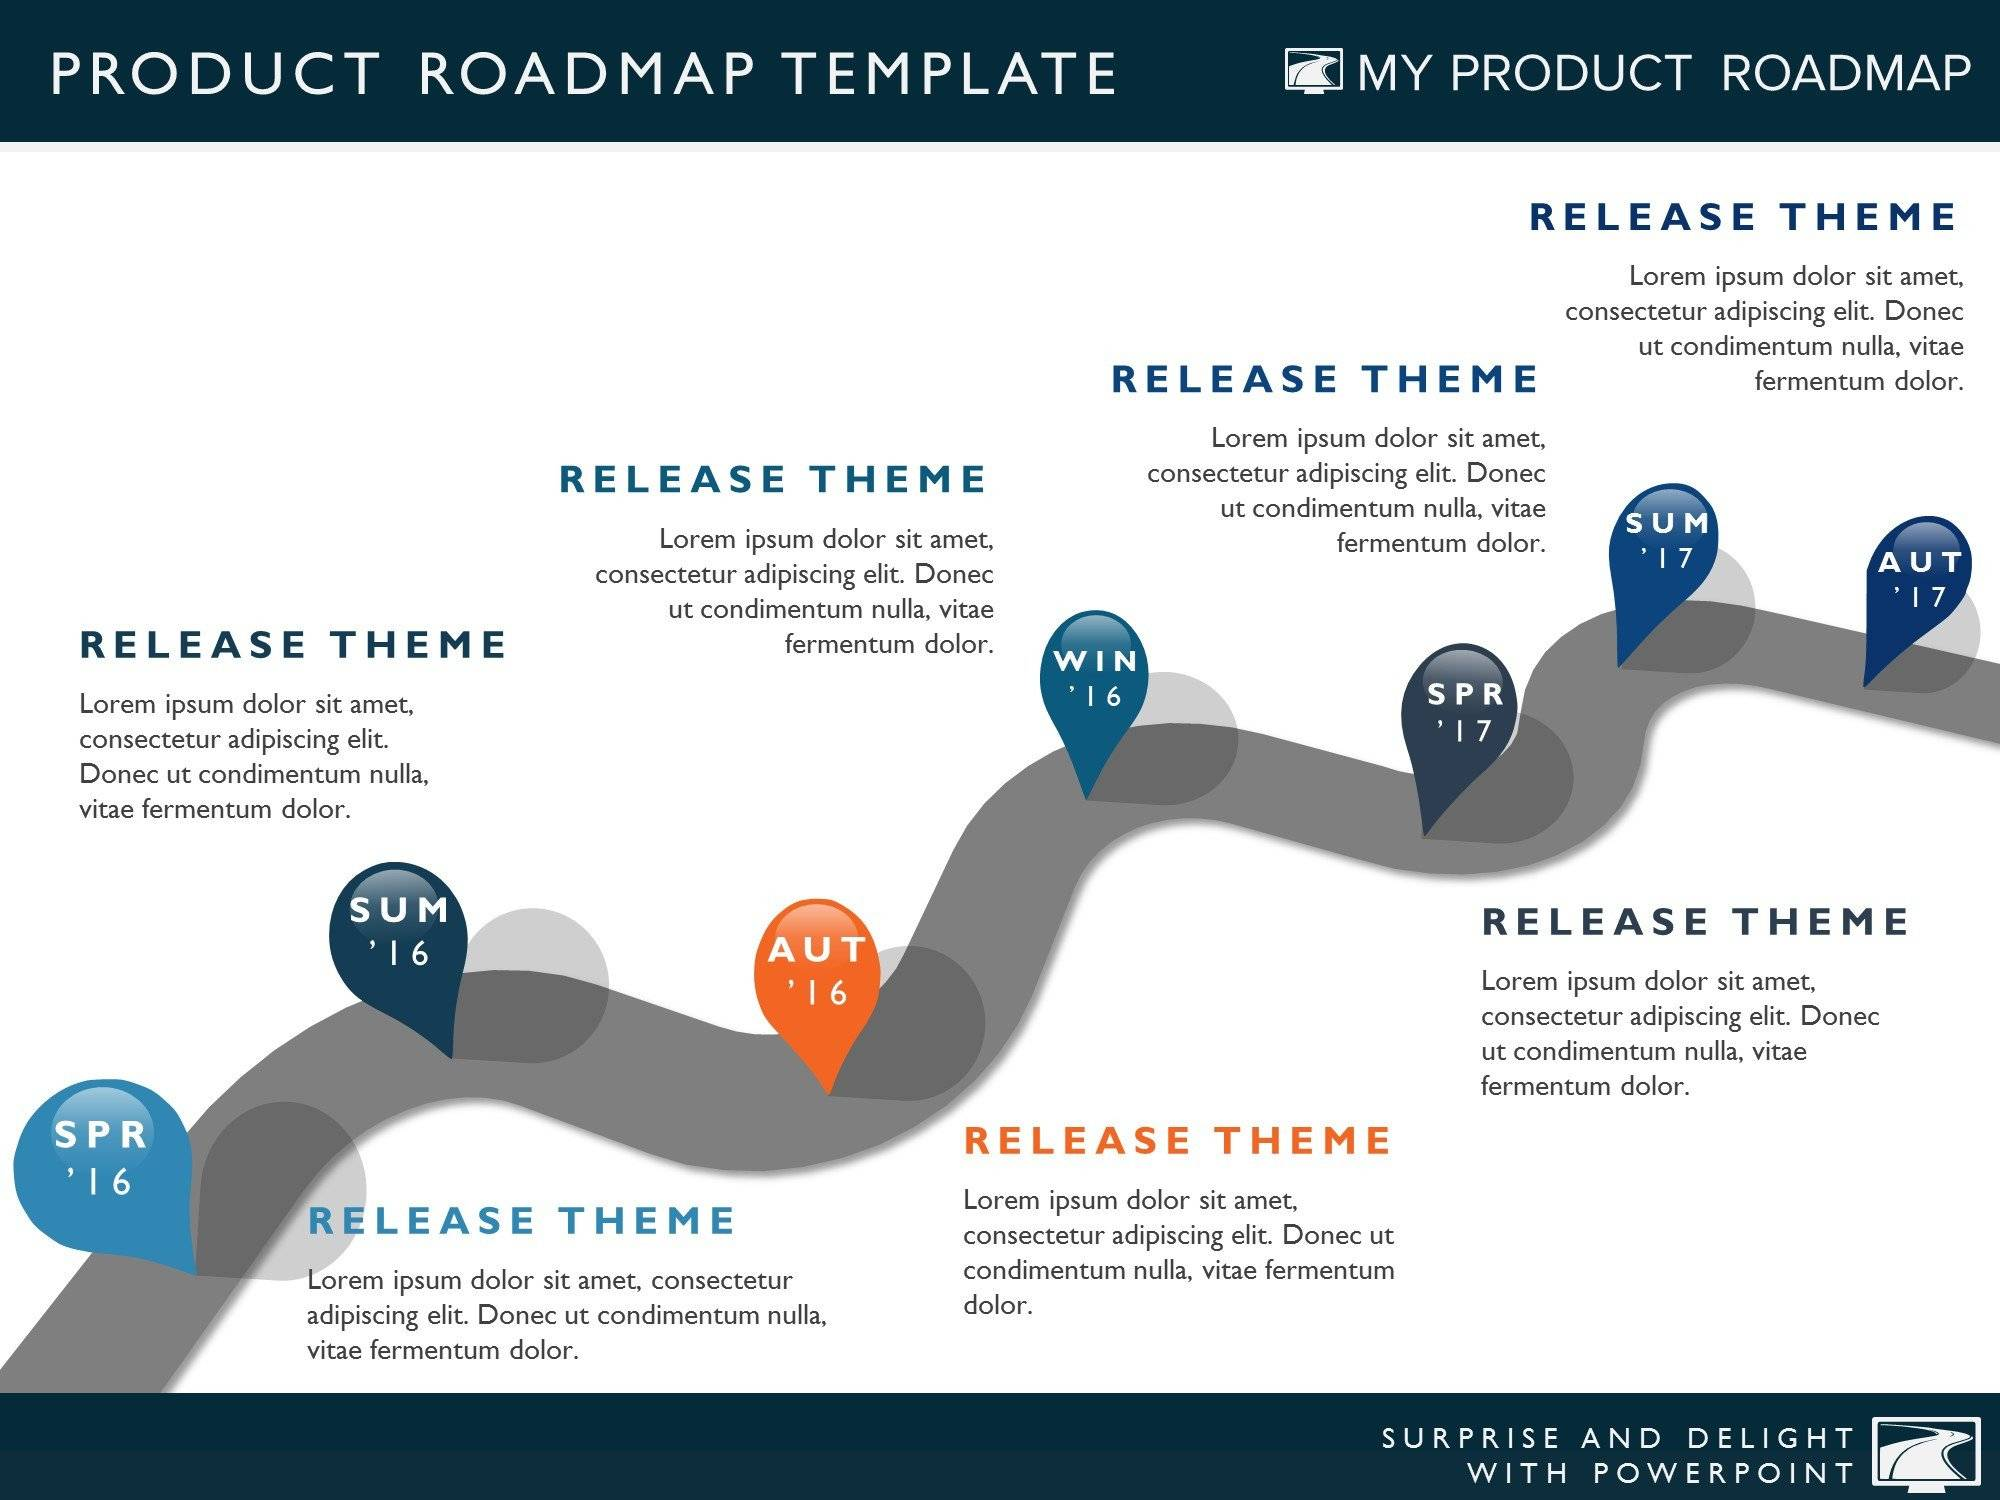 Product Roadmap Template Ppt Free